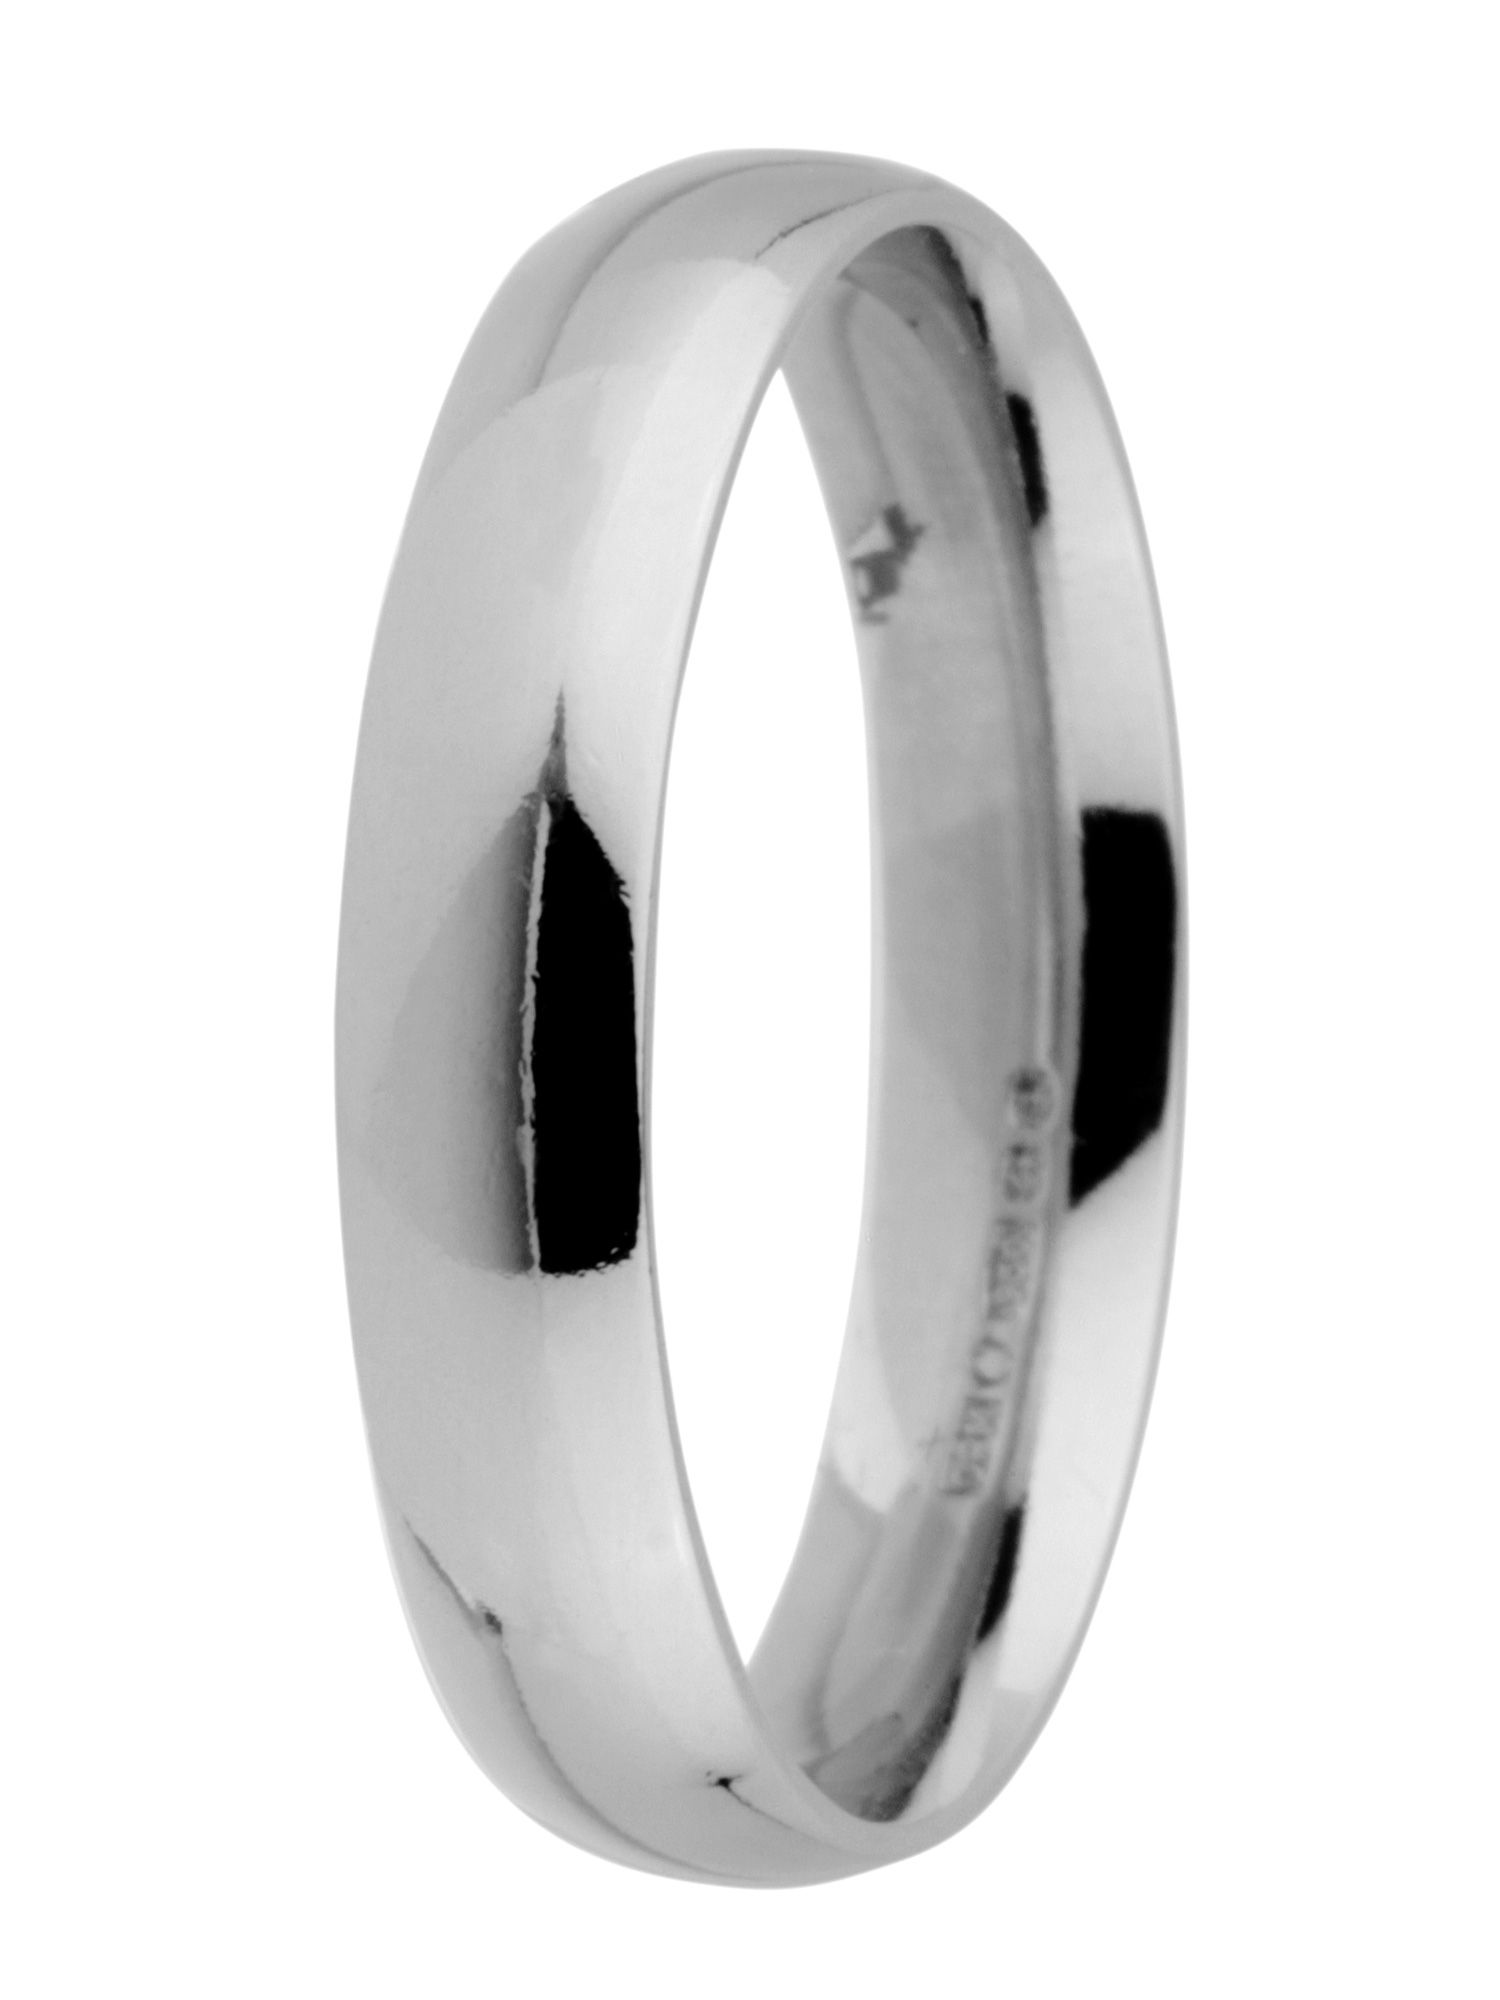 Grooms palladium heavy court 4mm wedding ring - Silver